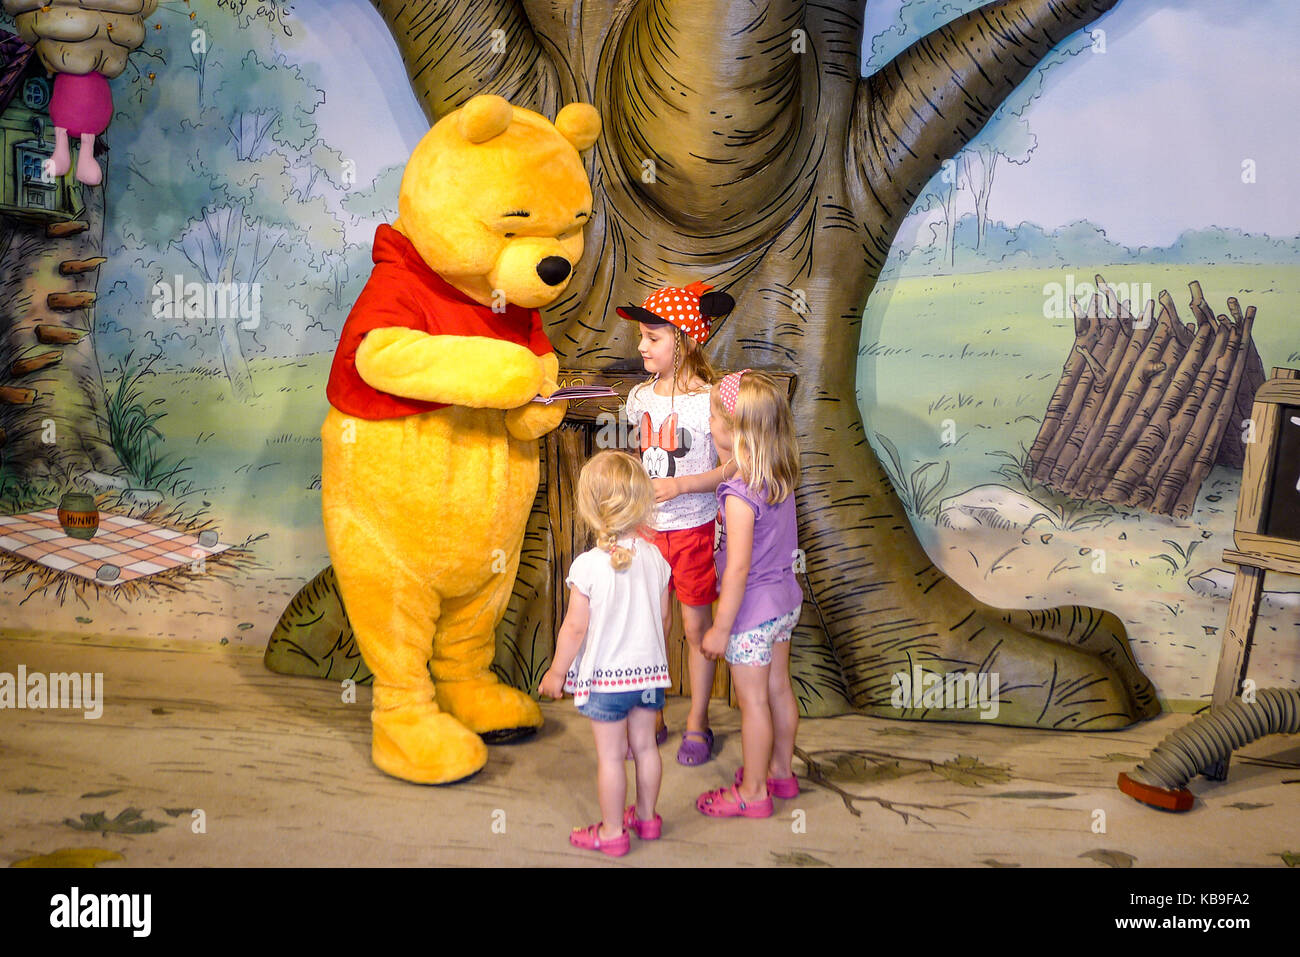 Winnie The Pooh Forest Background: Christopher Milne Stock Photos & Christopher Milne Stock